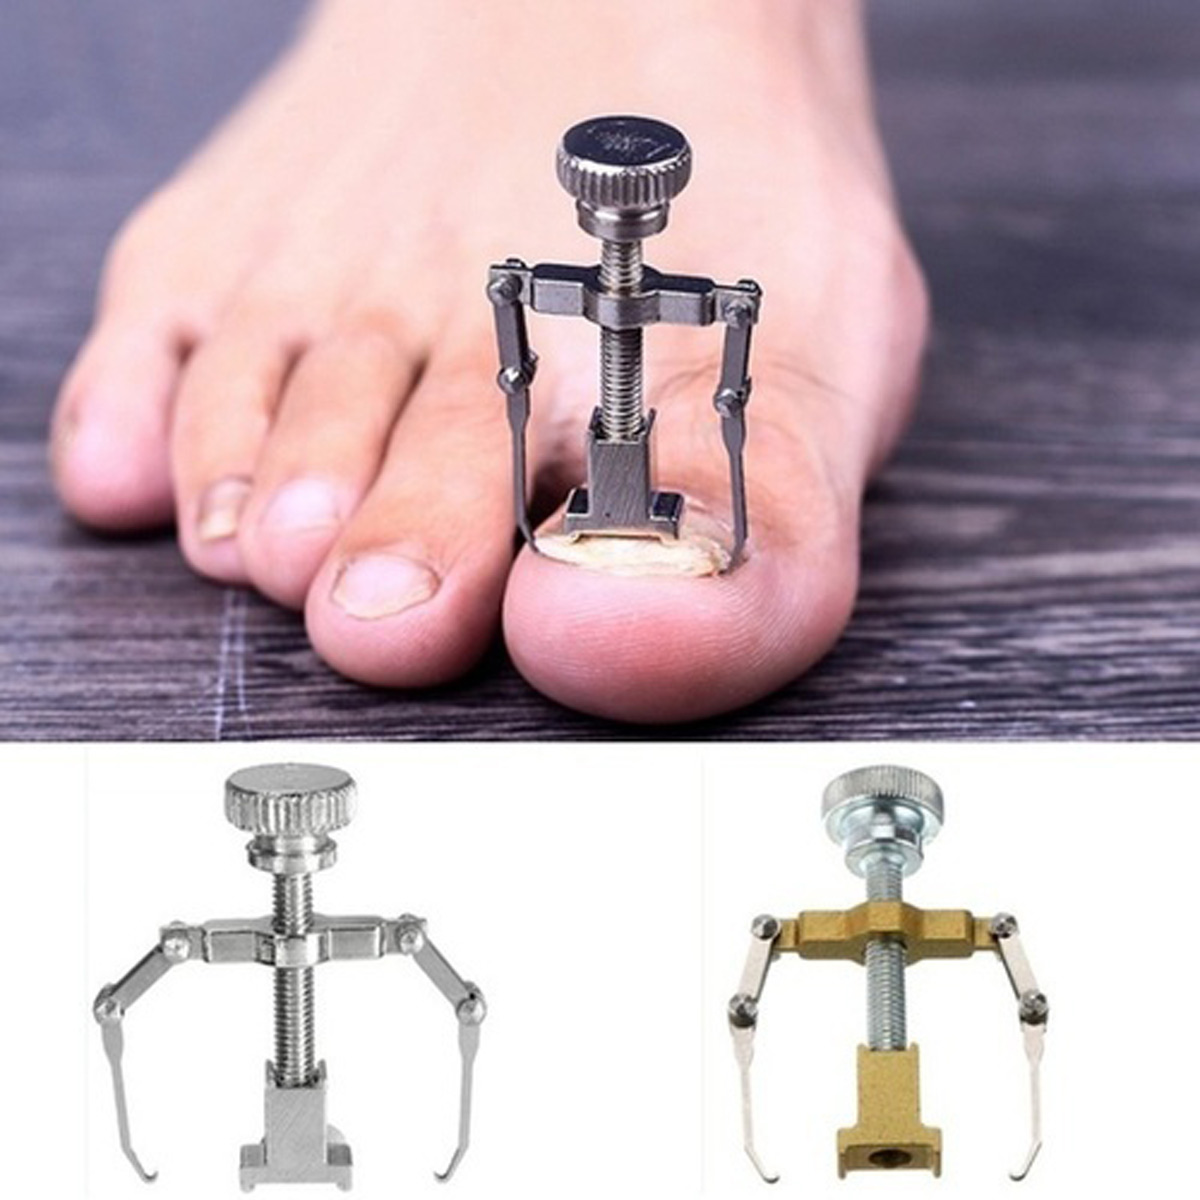 A selection of the weirdest items available on Wish